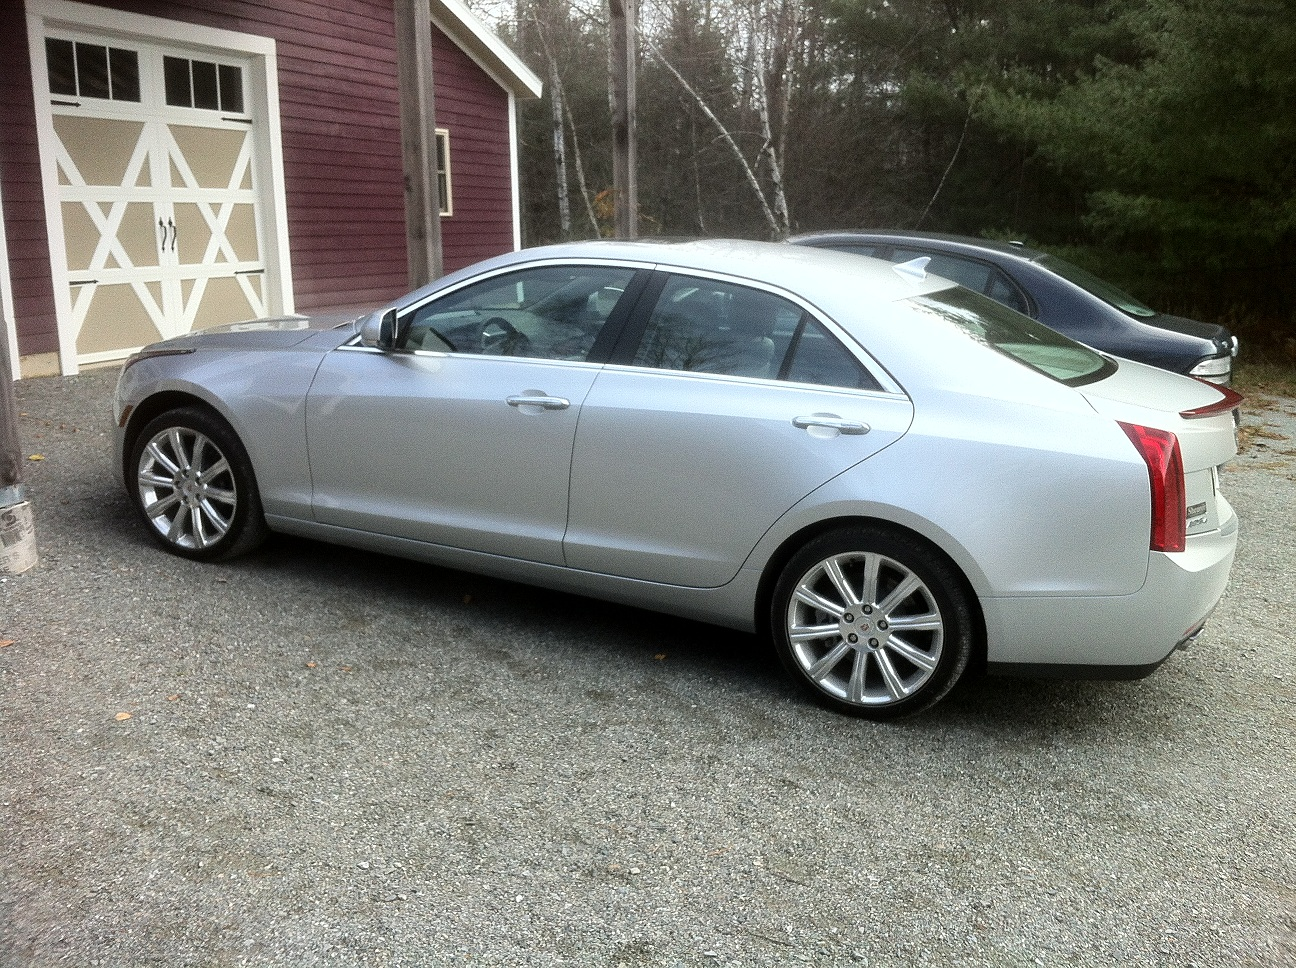 Silver 2013 Cadillac ATS 2.0T AWD Automatic